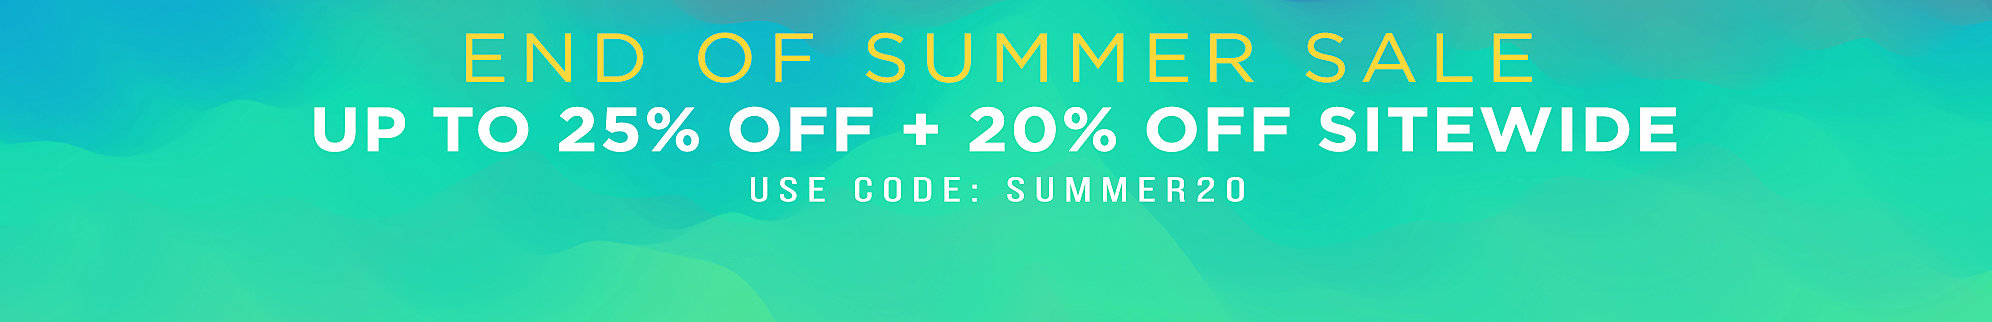 20% Off Sitewide with Code SUMMER20